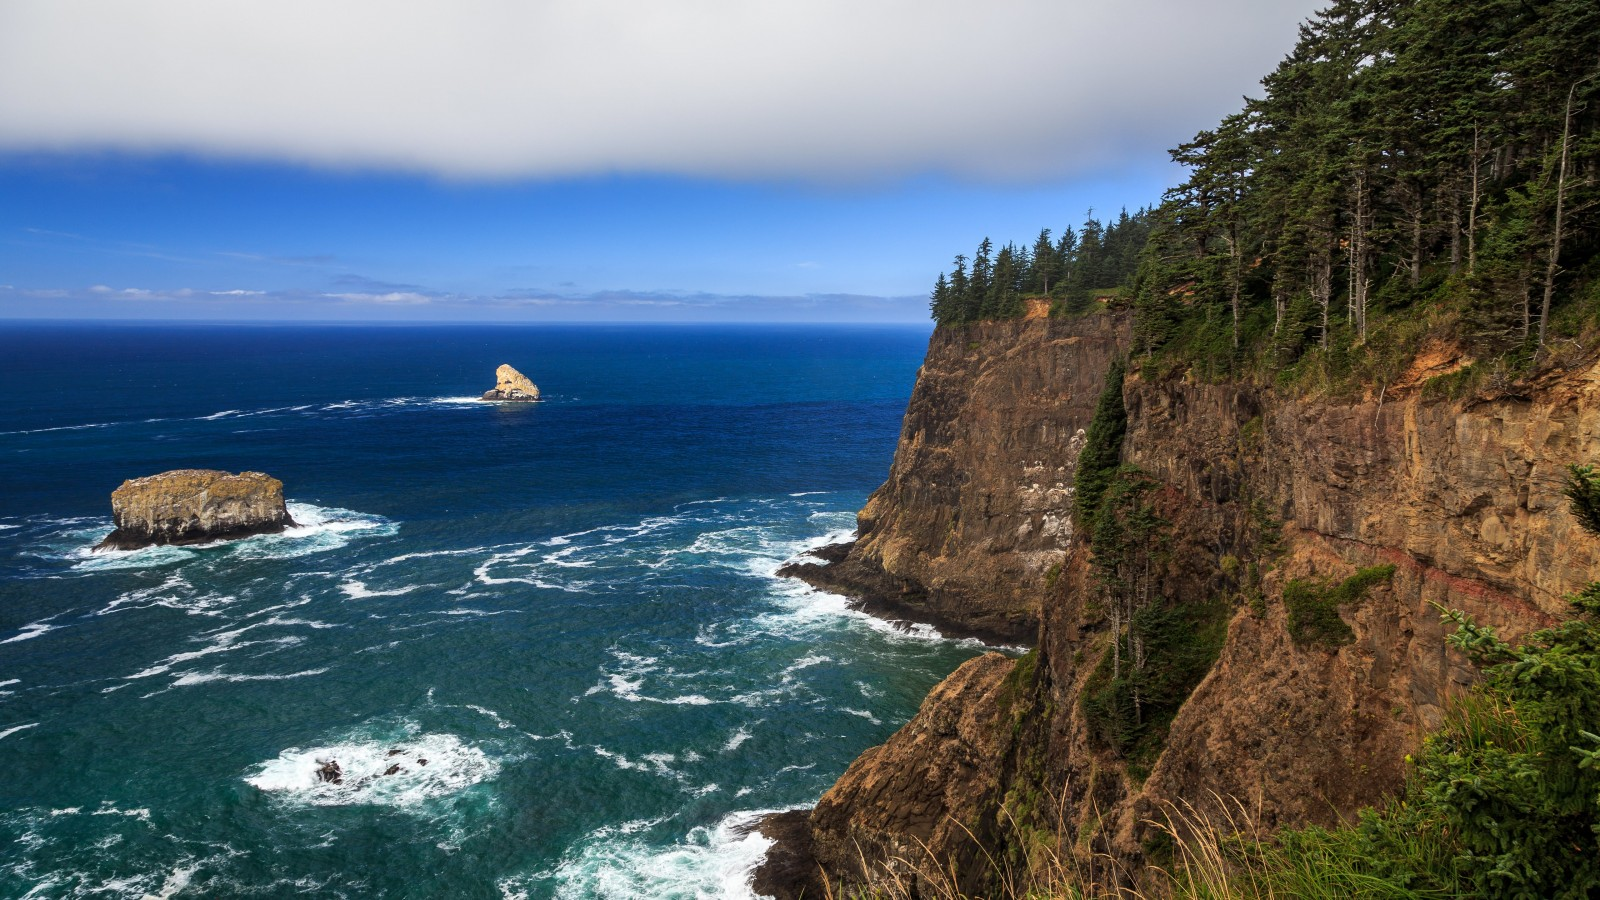 The Left Edge, Cape Lookout, Oregon Wallpaper for Desktop 1600x900